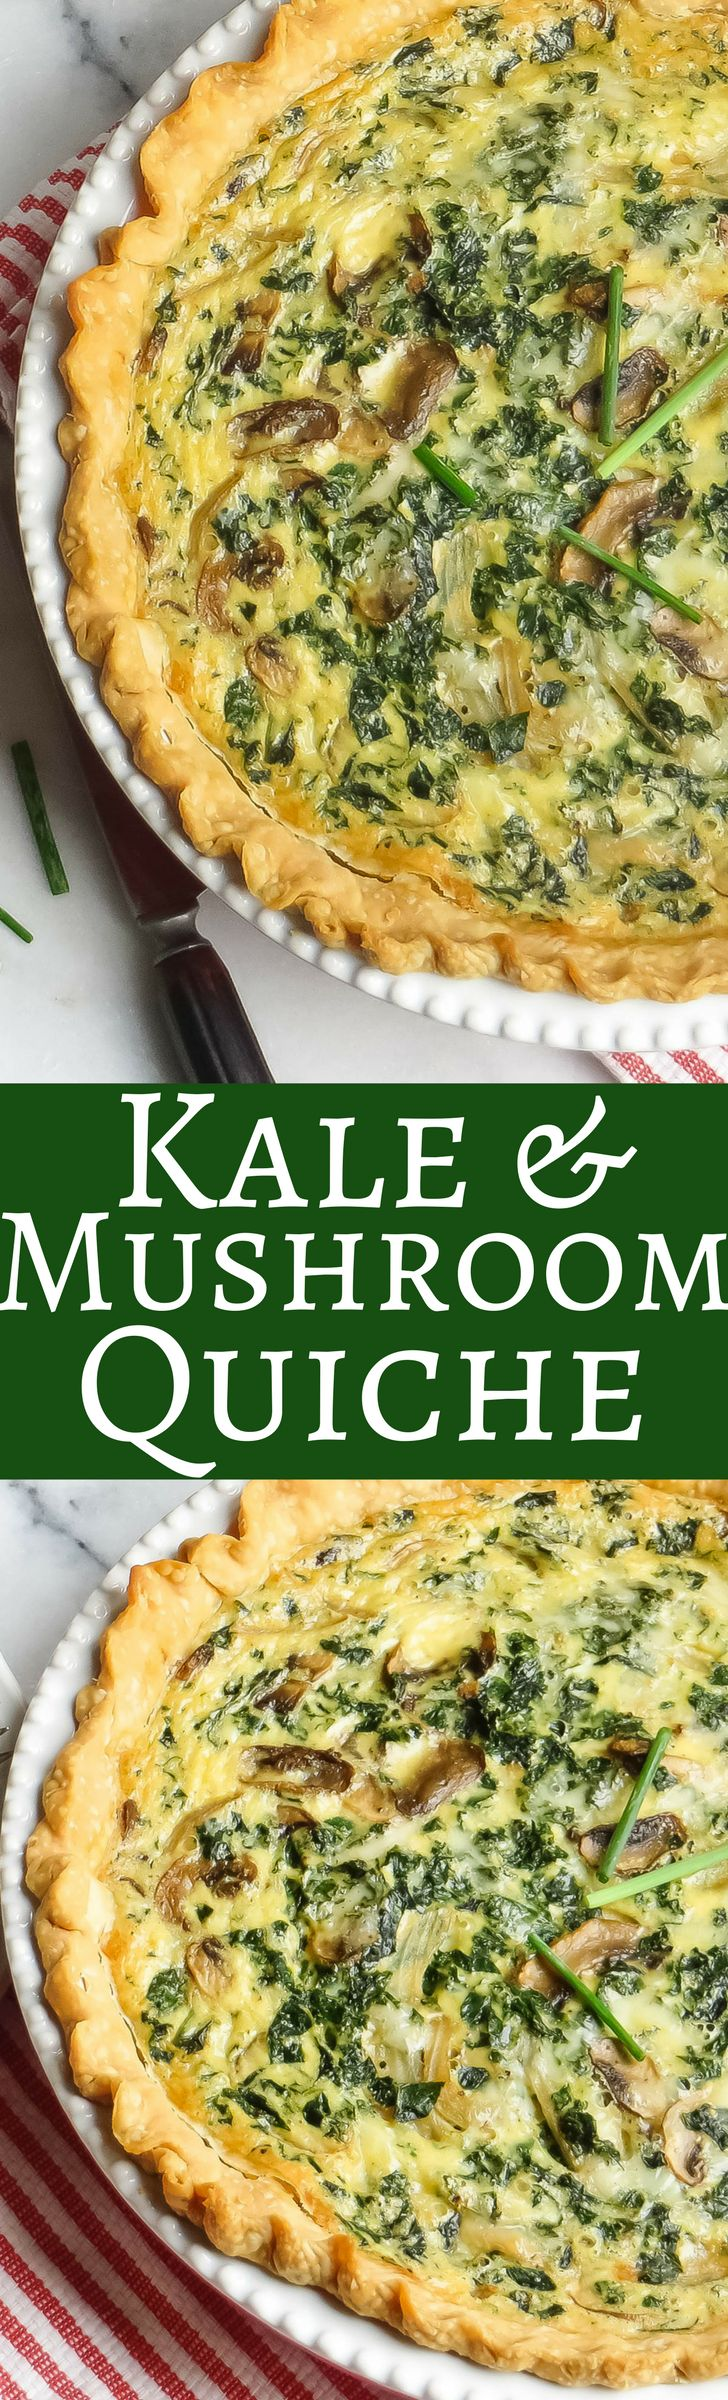 Change the crust to THMify. Kale and Mushroom Quiche